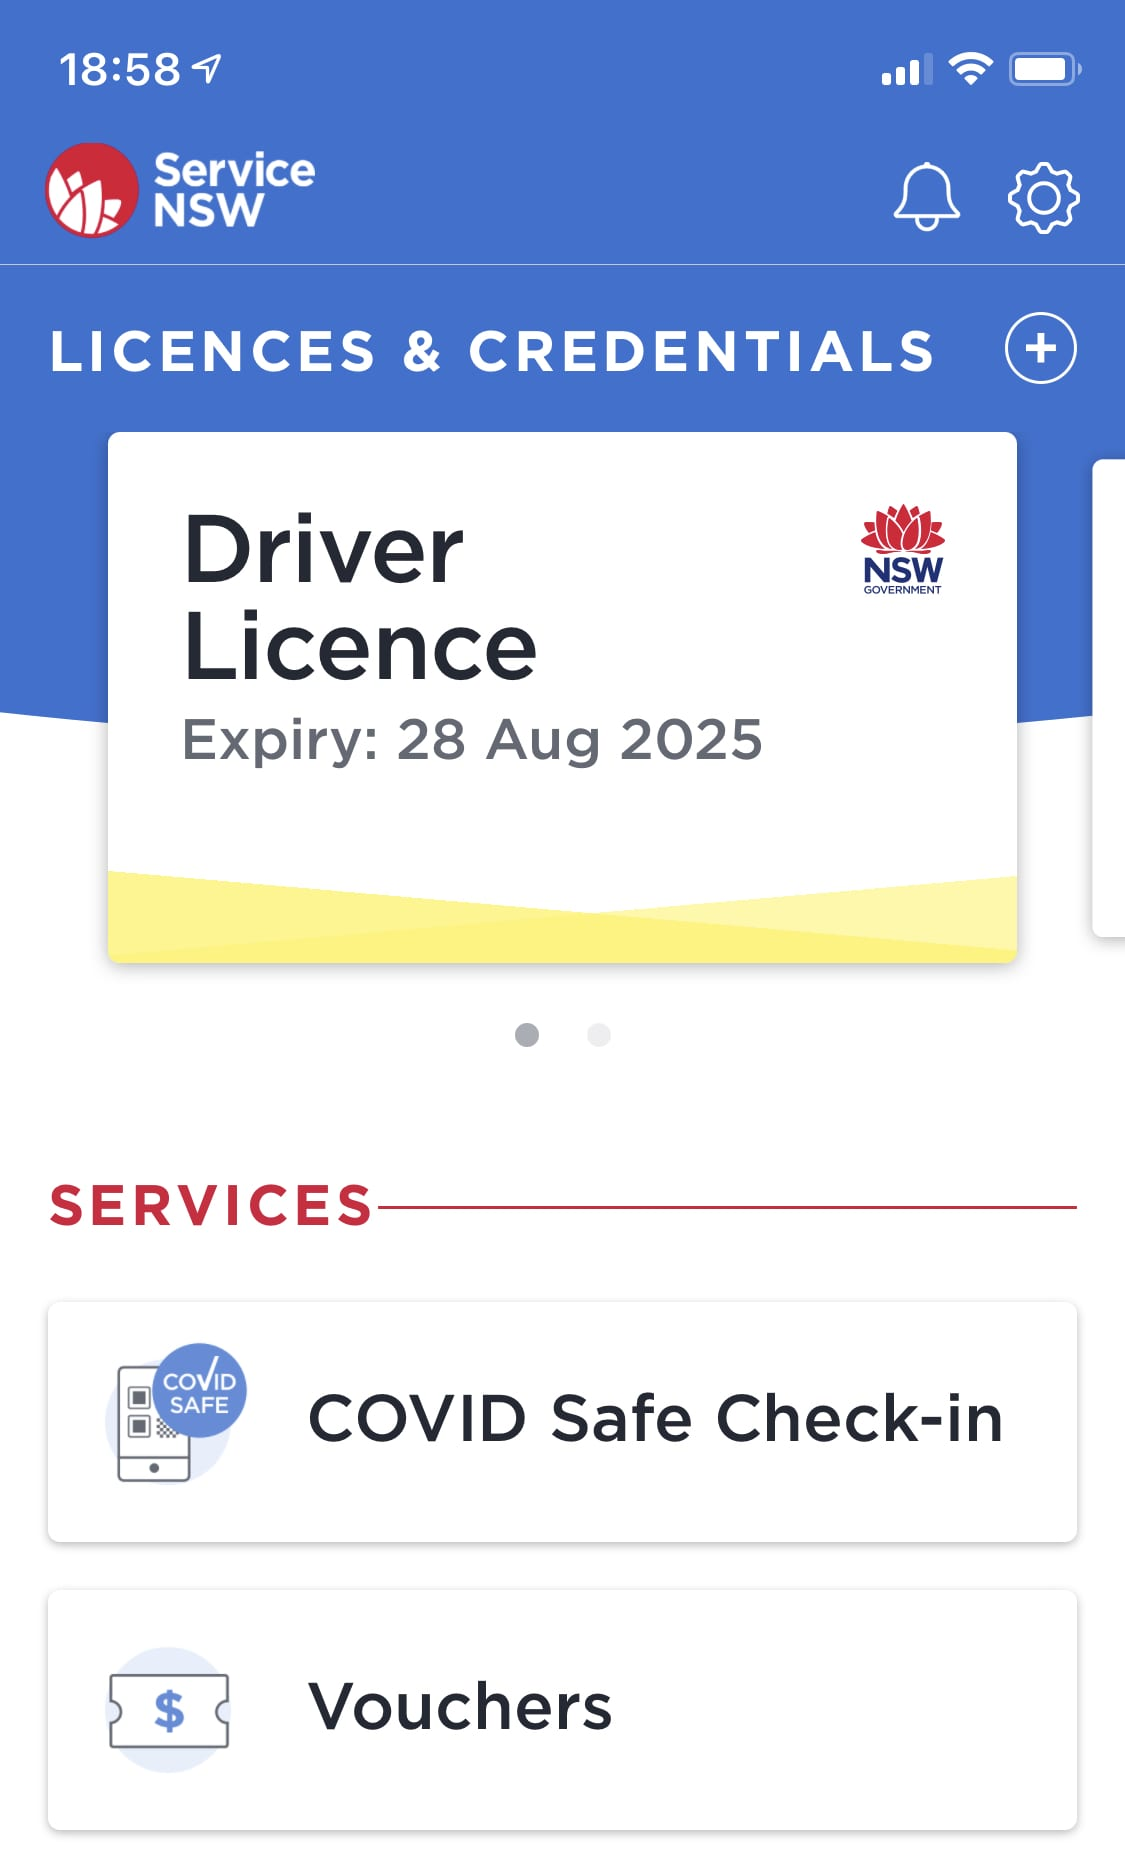 Service NSW Voucher Section